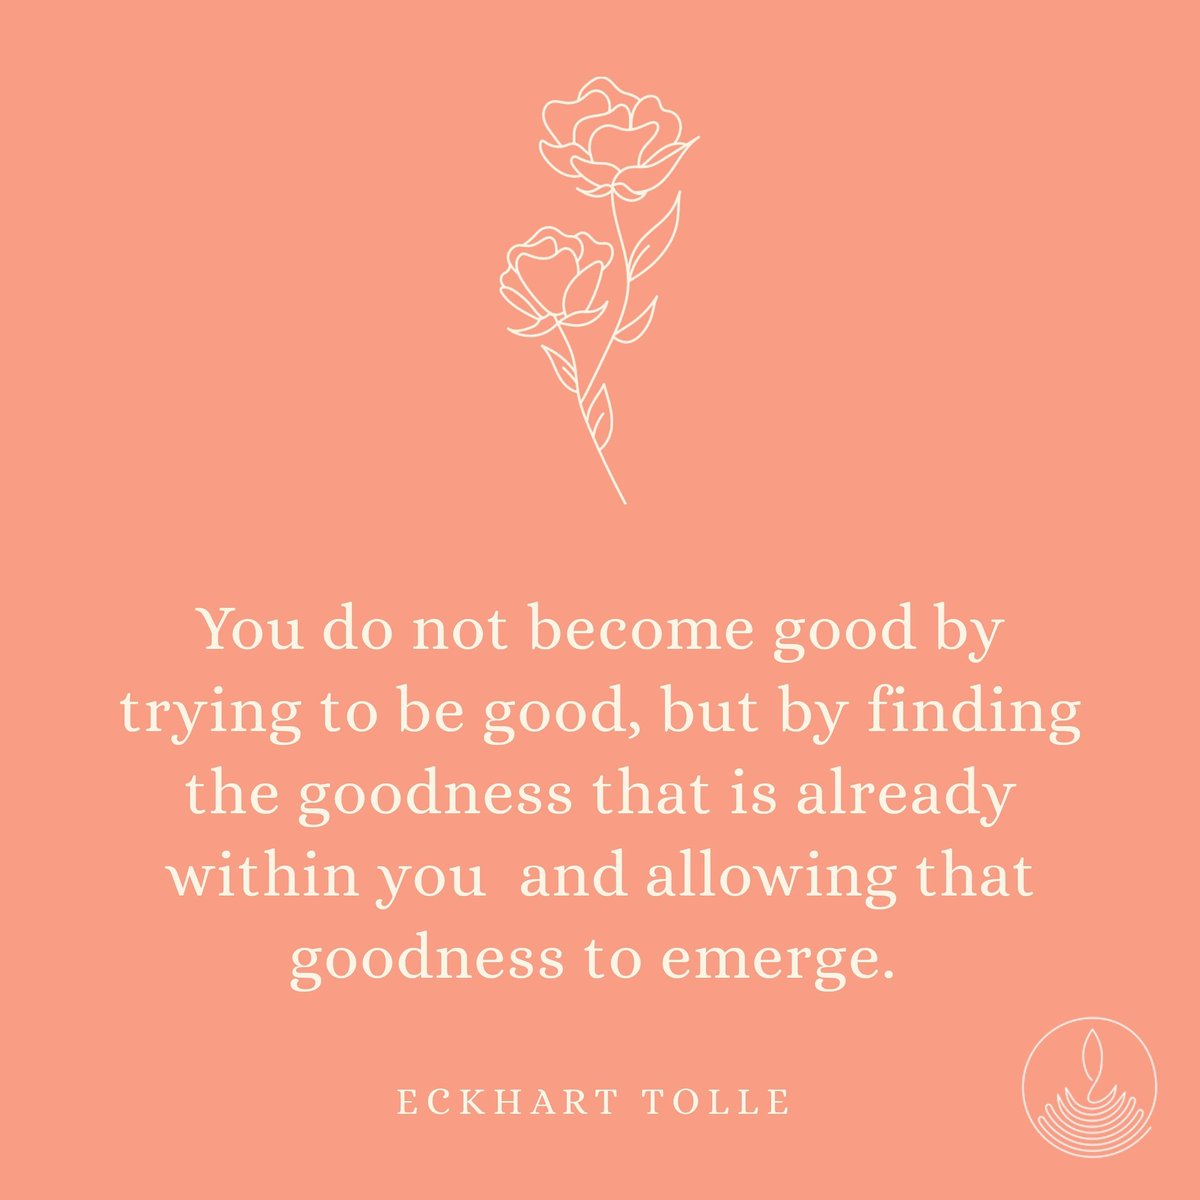 #selflove #goodness #beinggood  #goodvibes #gooddeeds #eckharttolle #eckharttollequotes #authentic #authenticself #personalgrowth #peace #love #compassion https://t.co/pX0N3C2crX